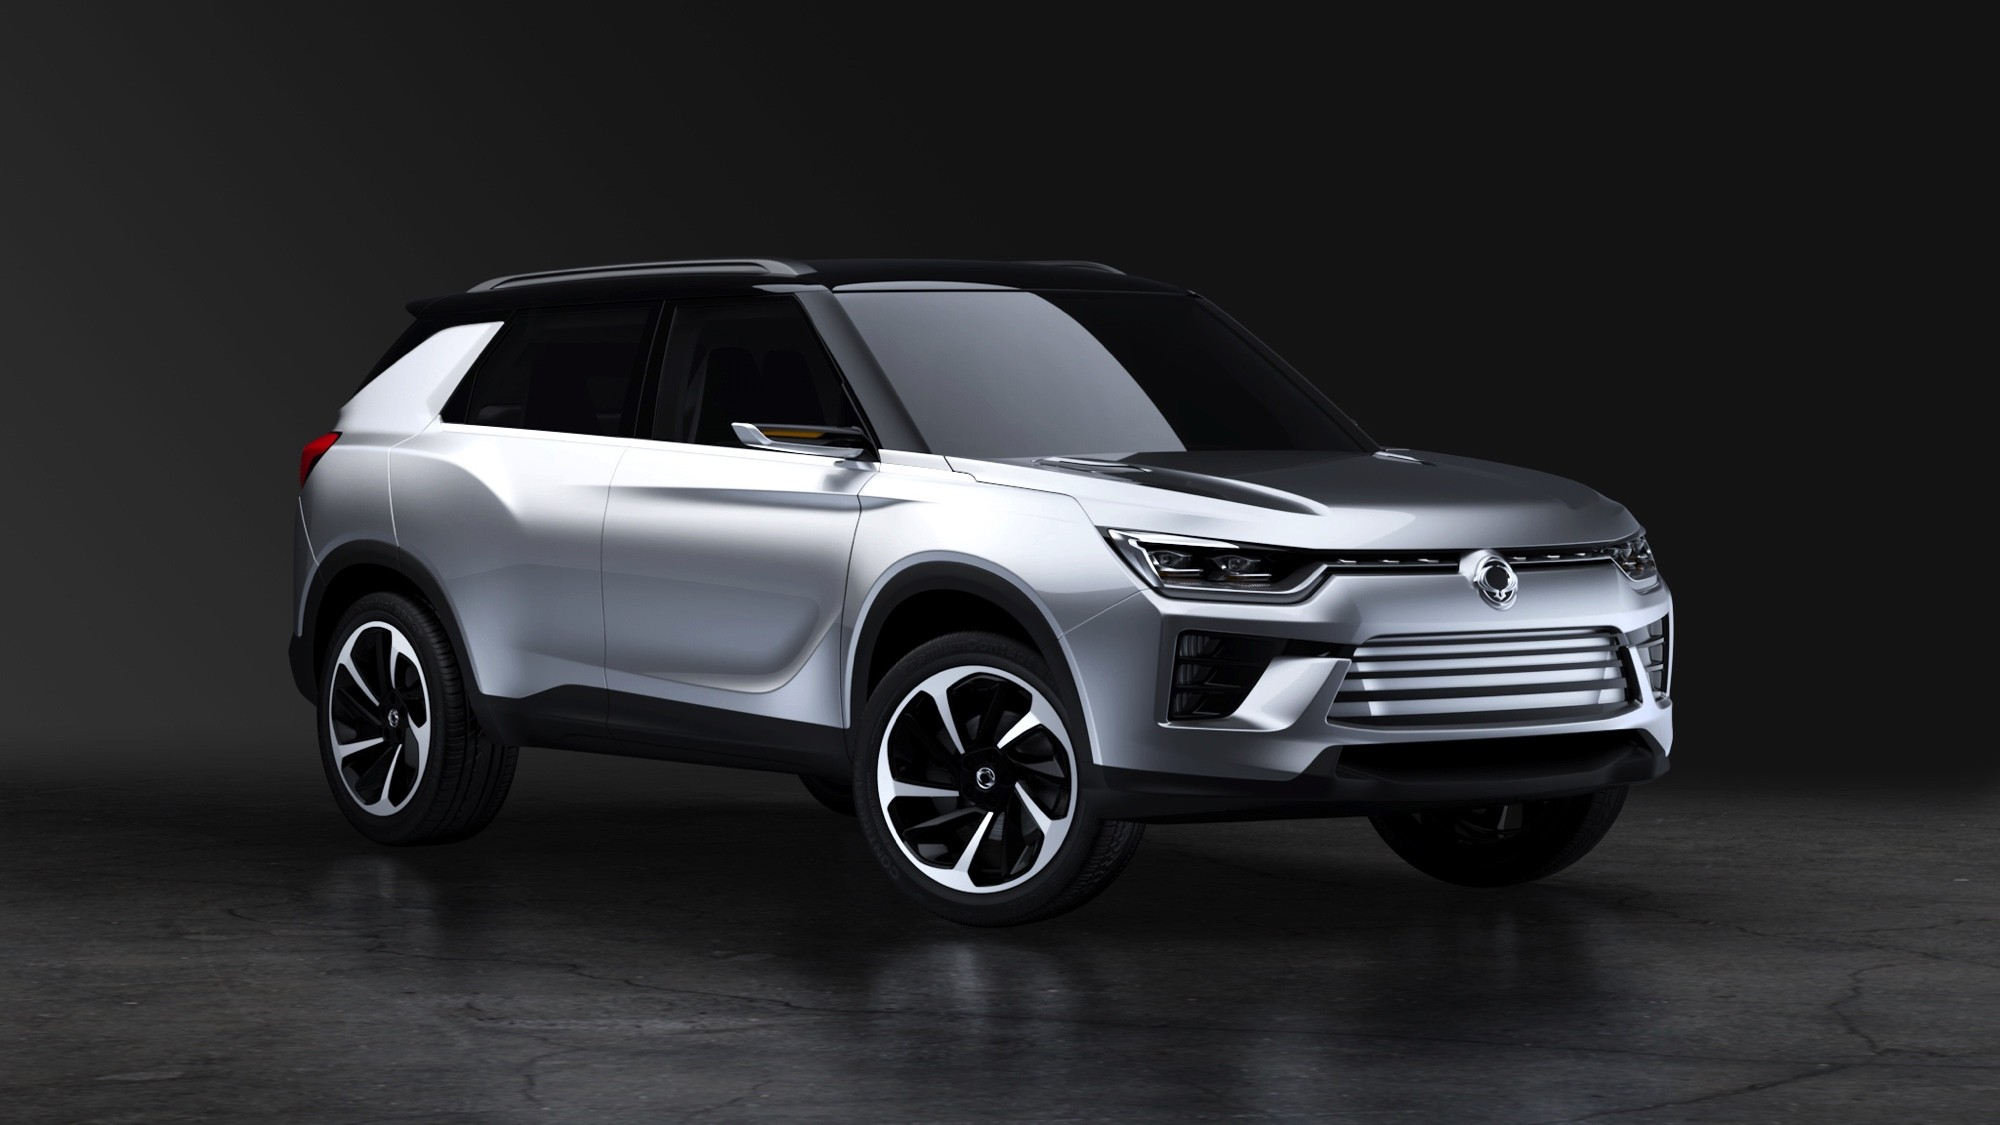 SsangYong SUV Concept -1- Autovisie.nl